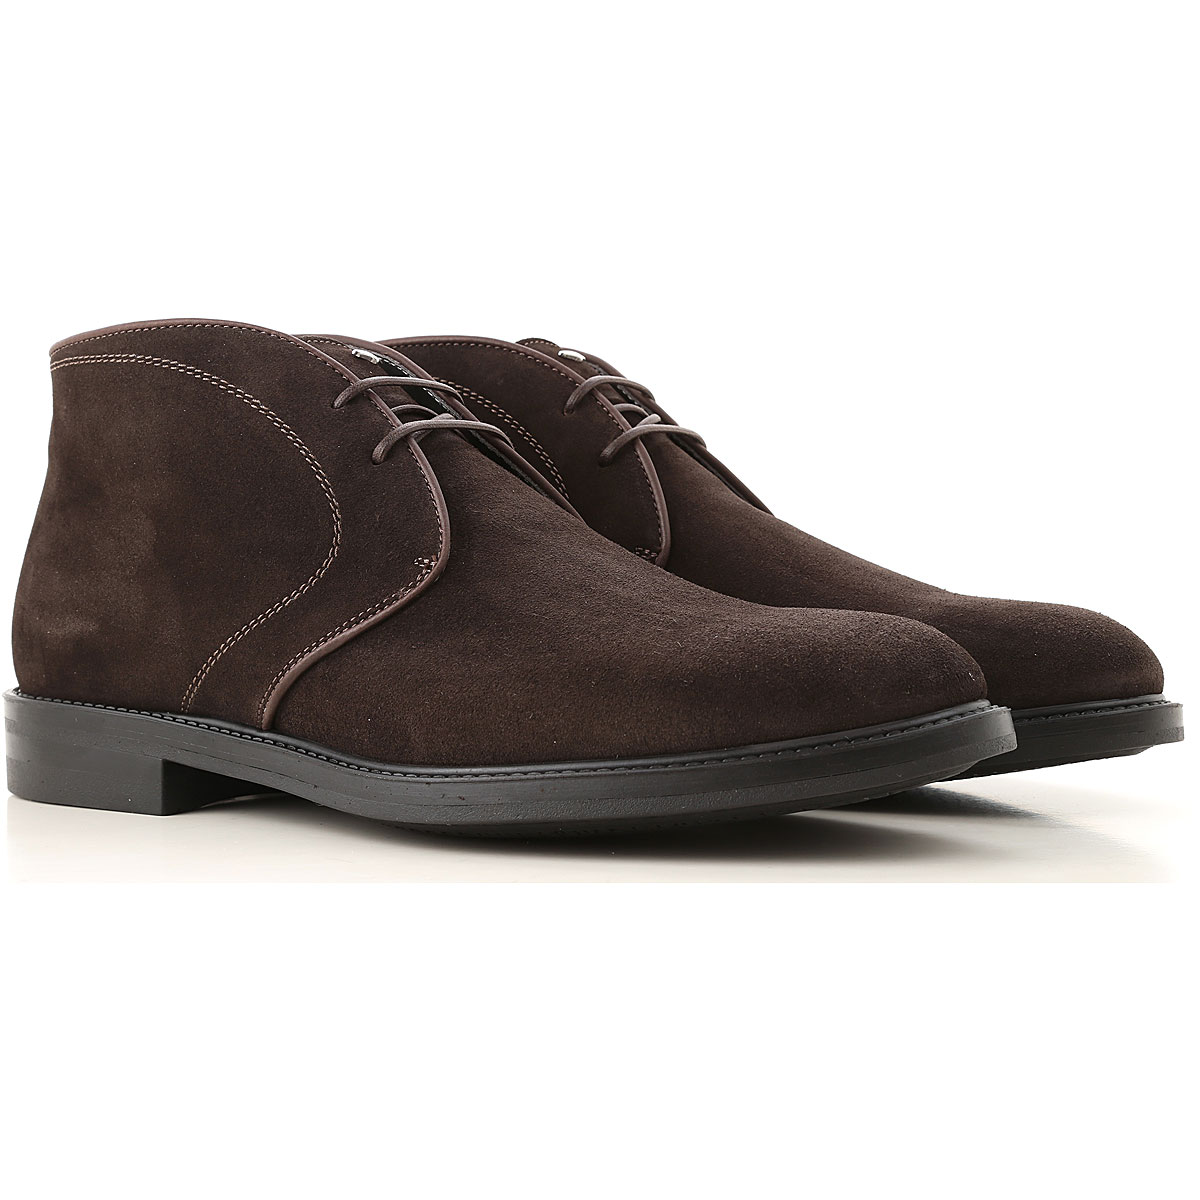 Alberto Guardiani Desert Boots Chukka for Men, Ebony, Suede leather, 2017, 10 10.5 7.5 8 9